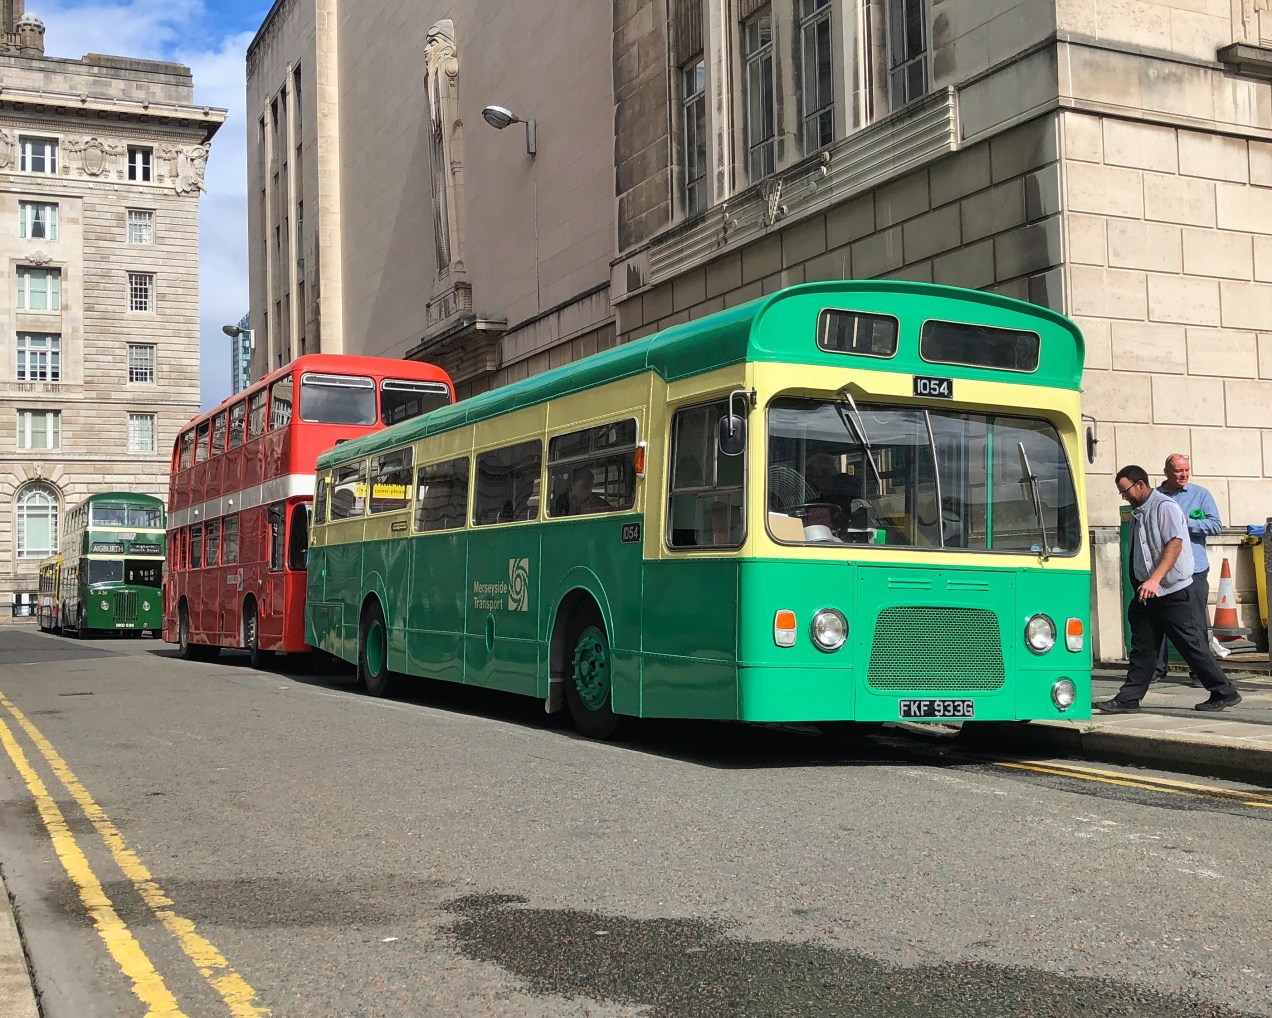 Merseyside Transport Trust Running Day on September 9th, 2018 in Liverpool, U.K.